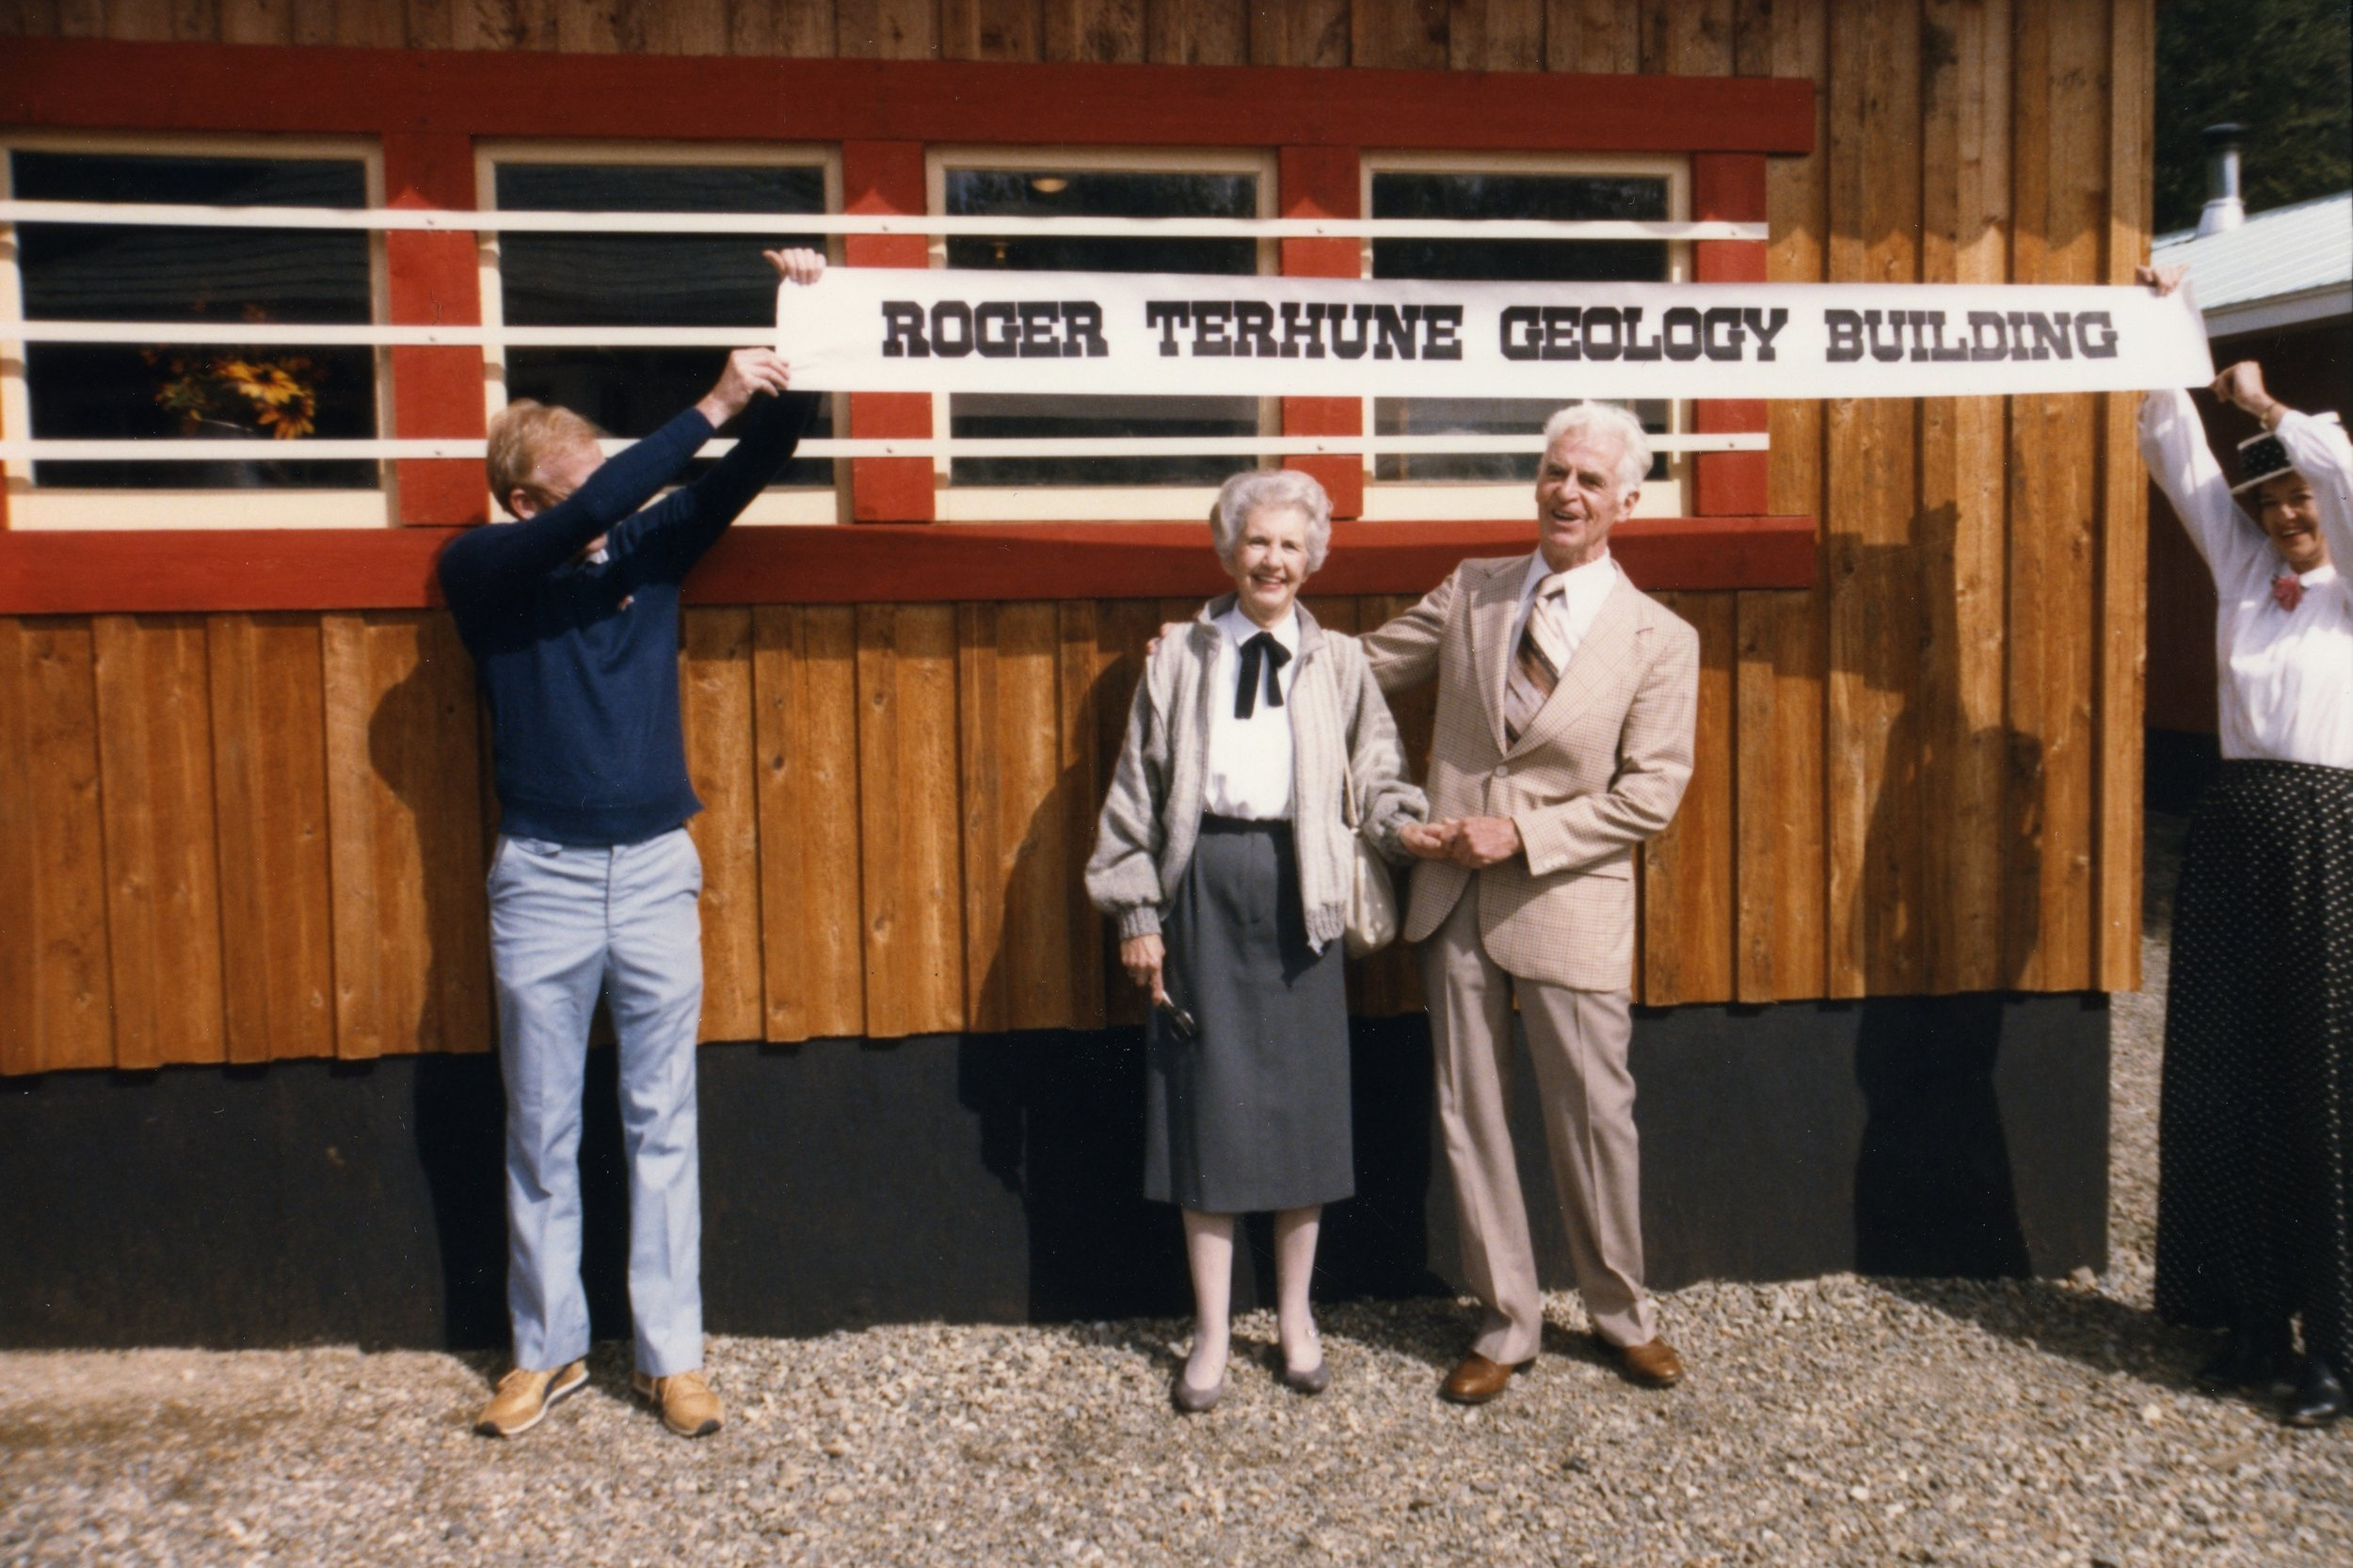 Photo 2349.0096: The opening of the Roger Terhune Geology Building in September 1985 during Rossland's Golden City Days celebrations. Pictured from left to right: Brian Fulsom, Mrs. Terhune, and Roger Terhune.